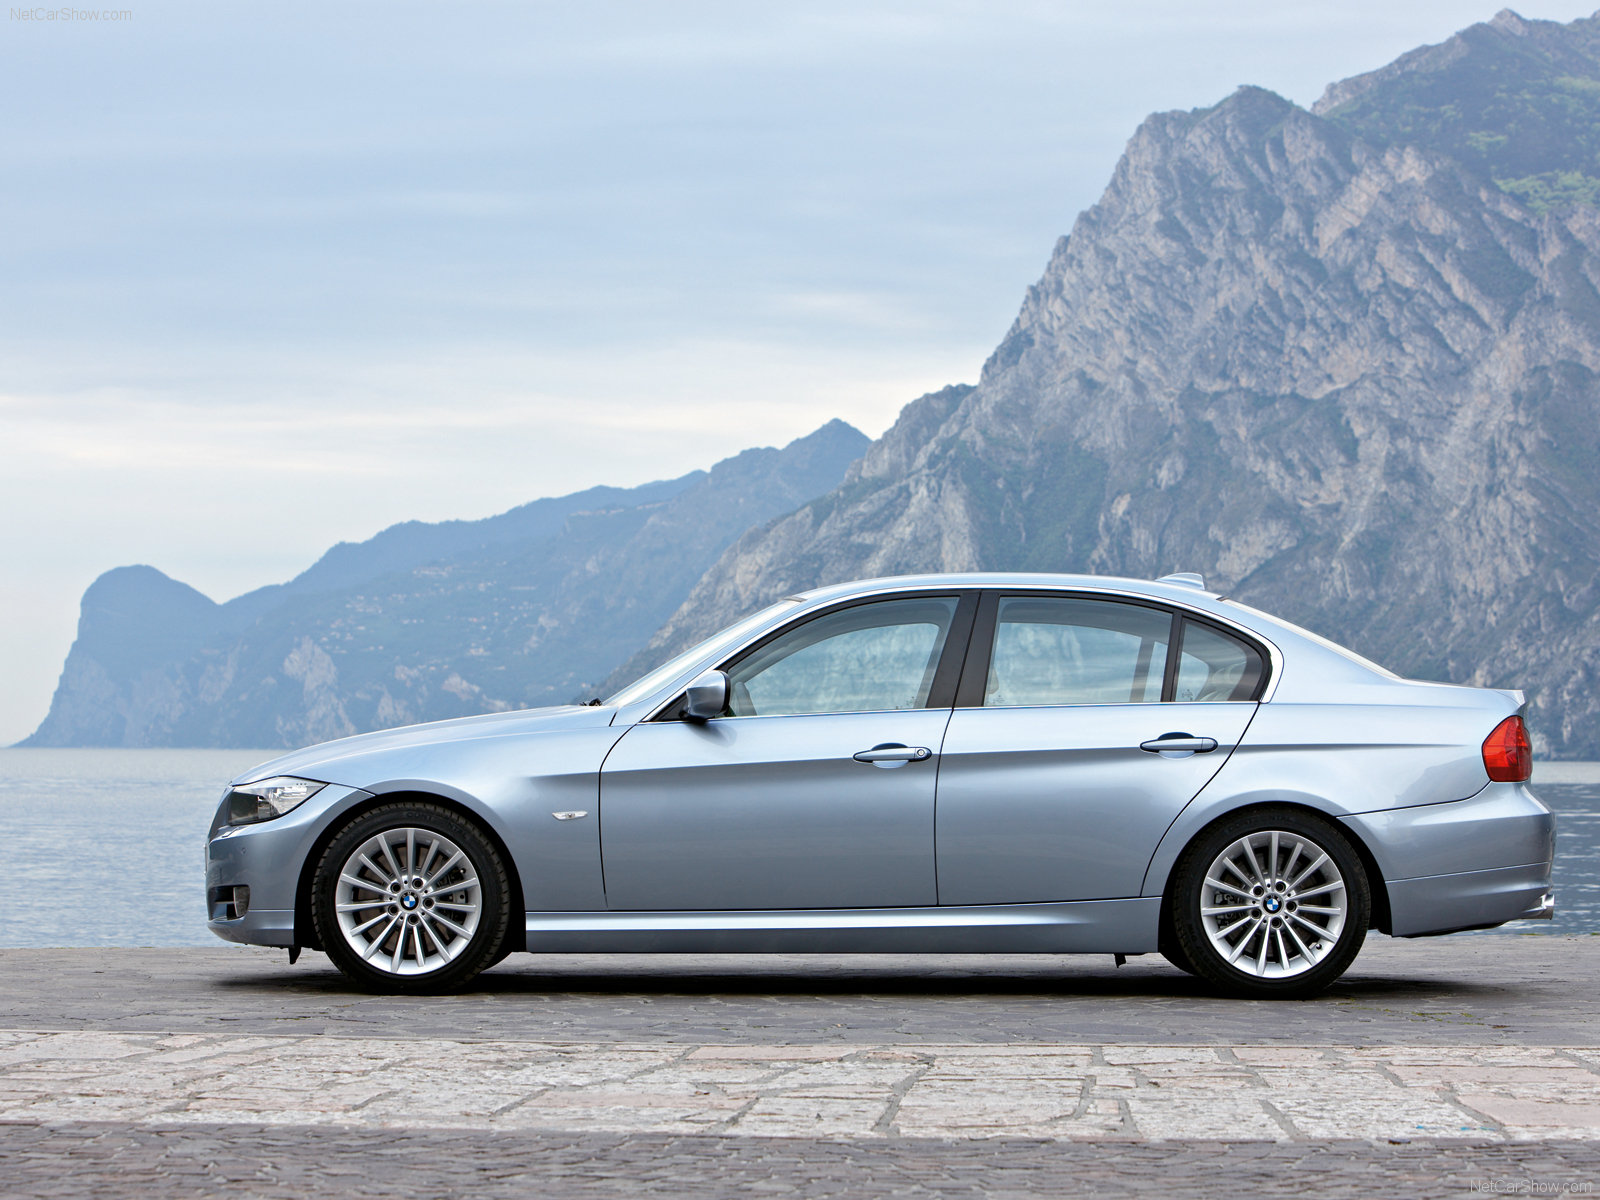 RACIONAUTO: BMW 320i JOY